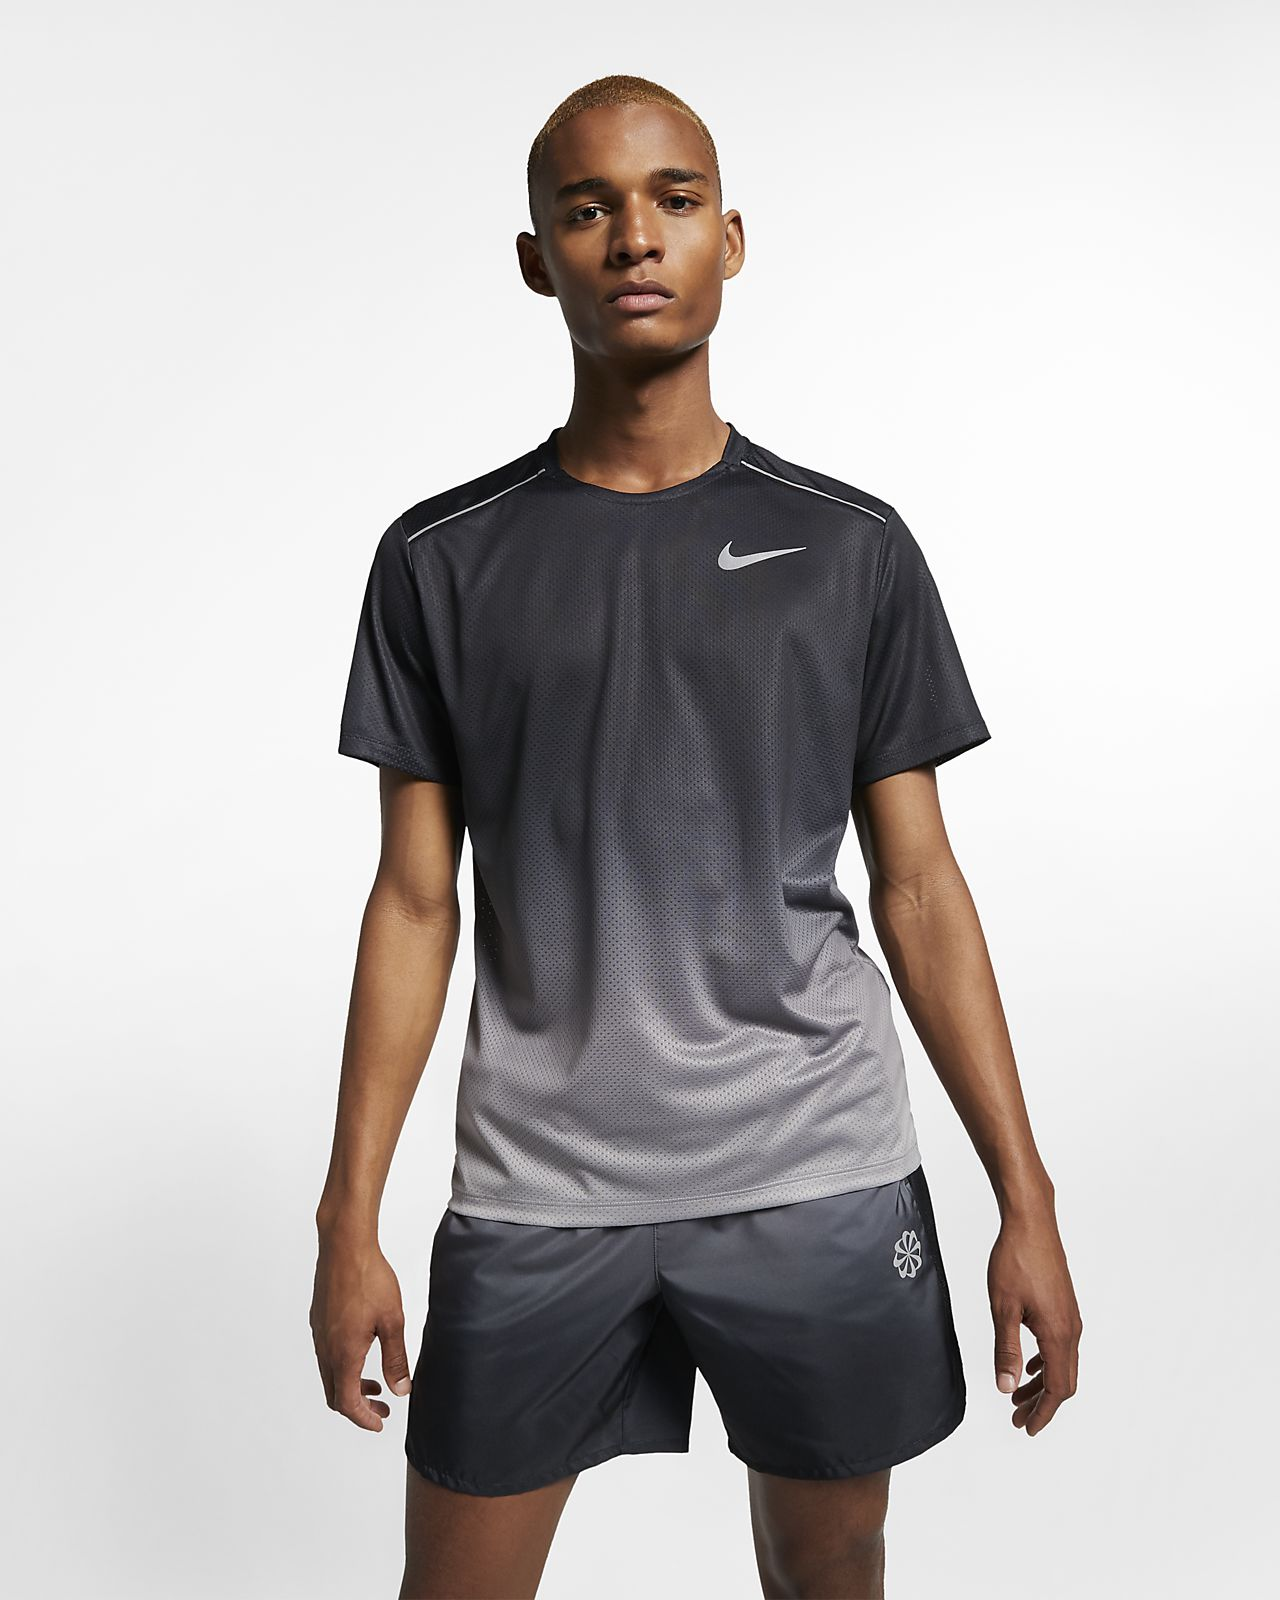 Nike Dri-FIT Miler Men's Short-Sleeve Printed Running Top